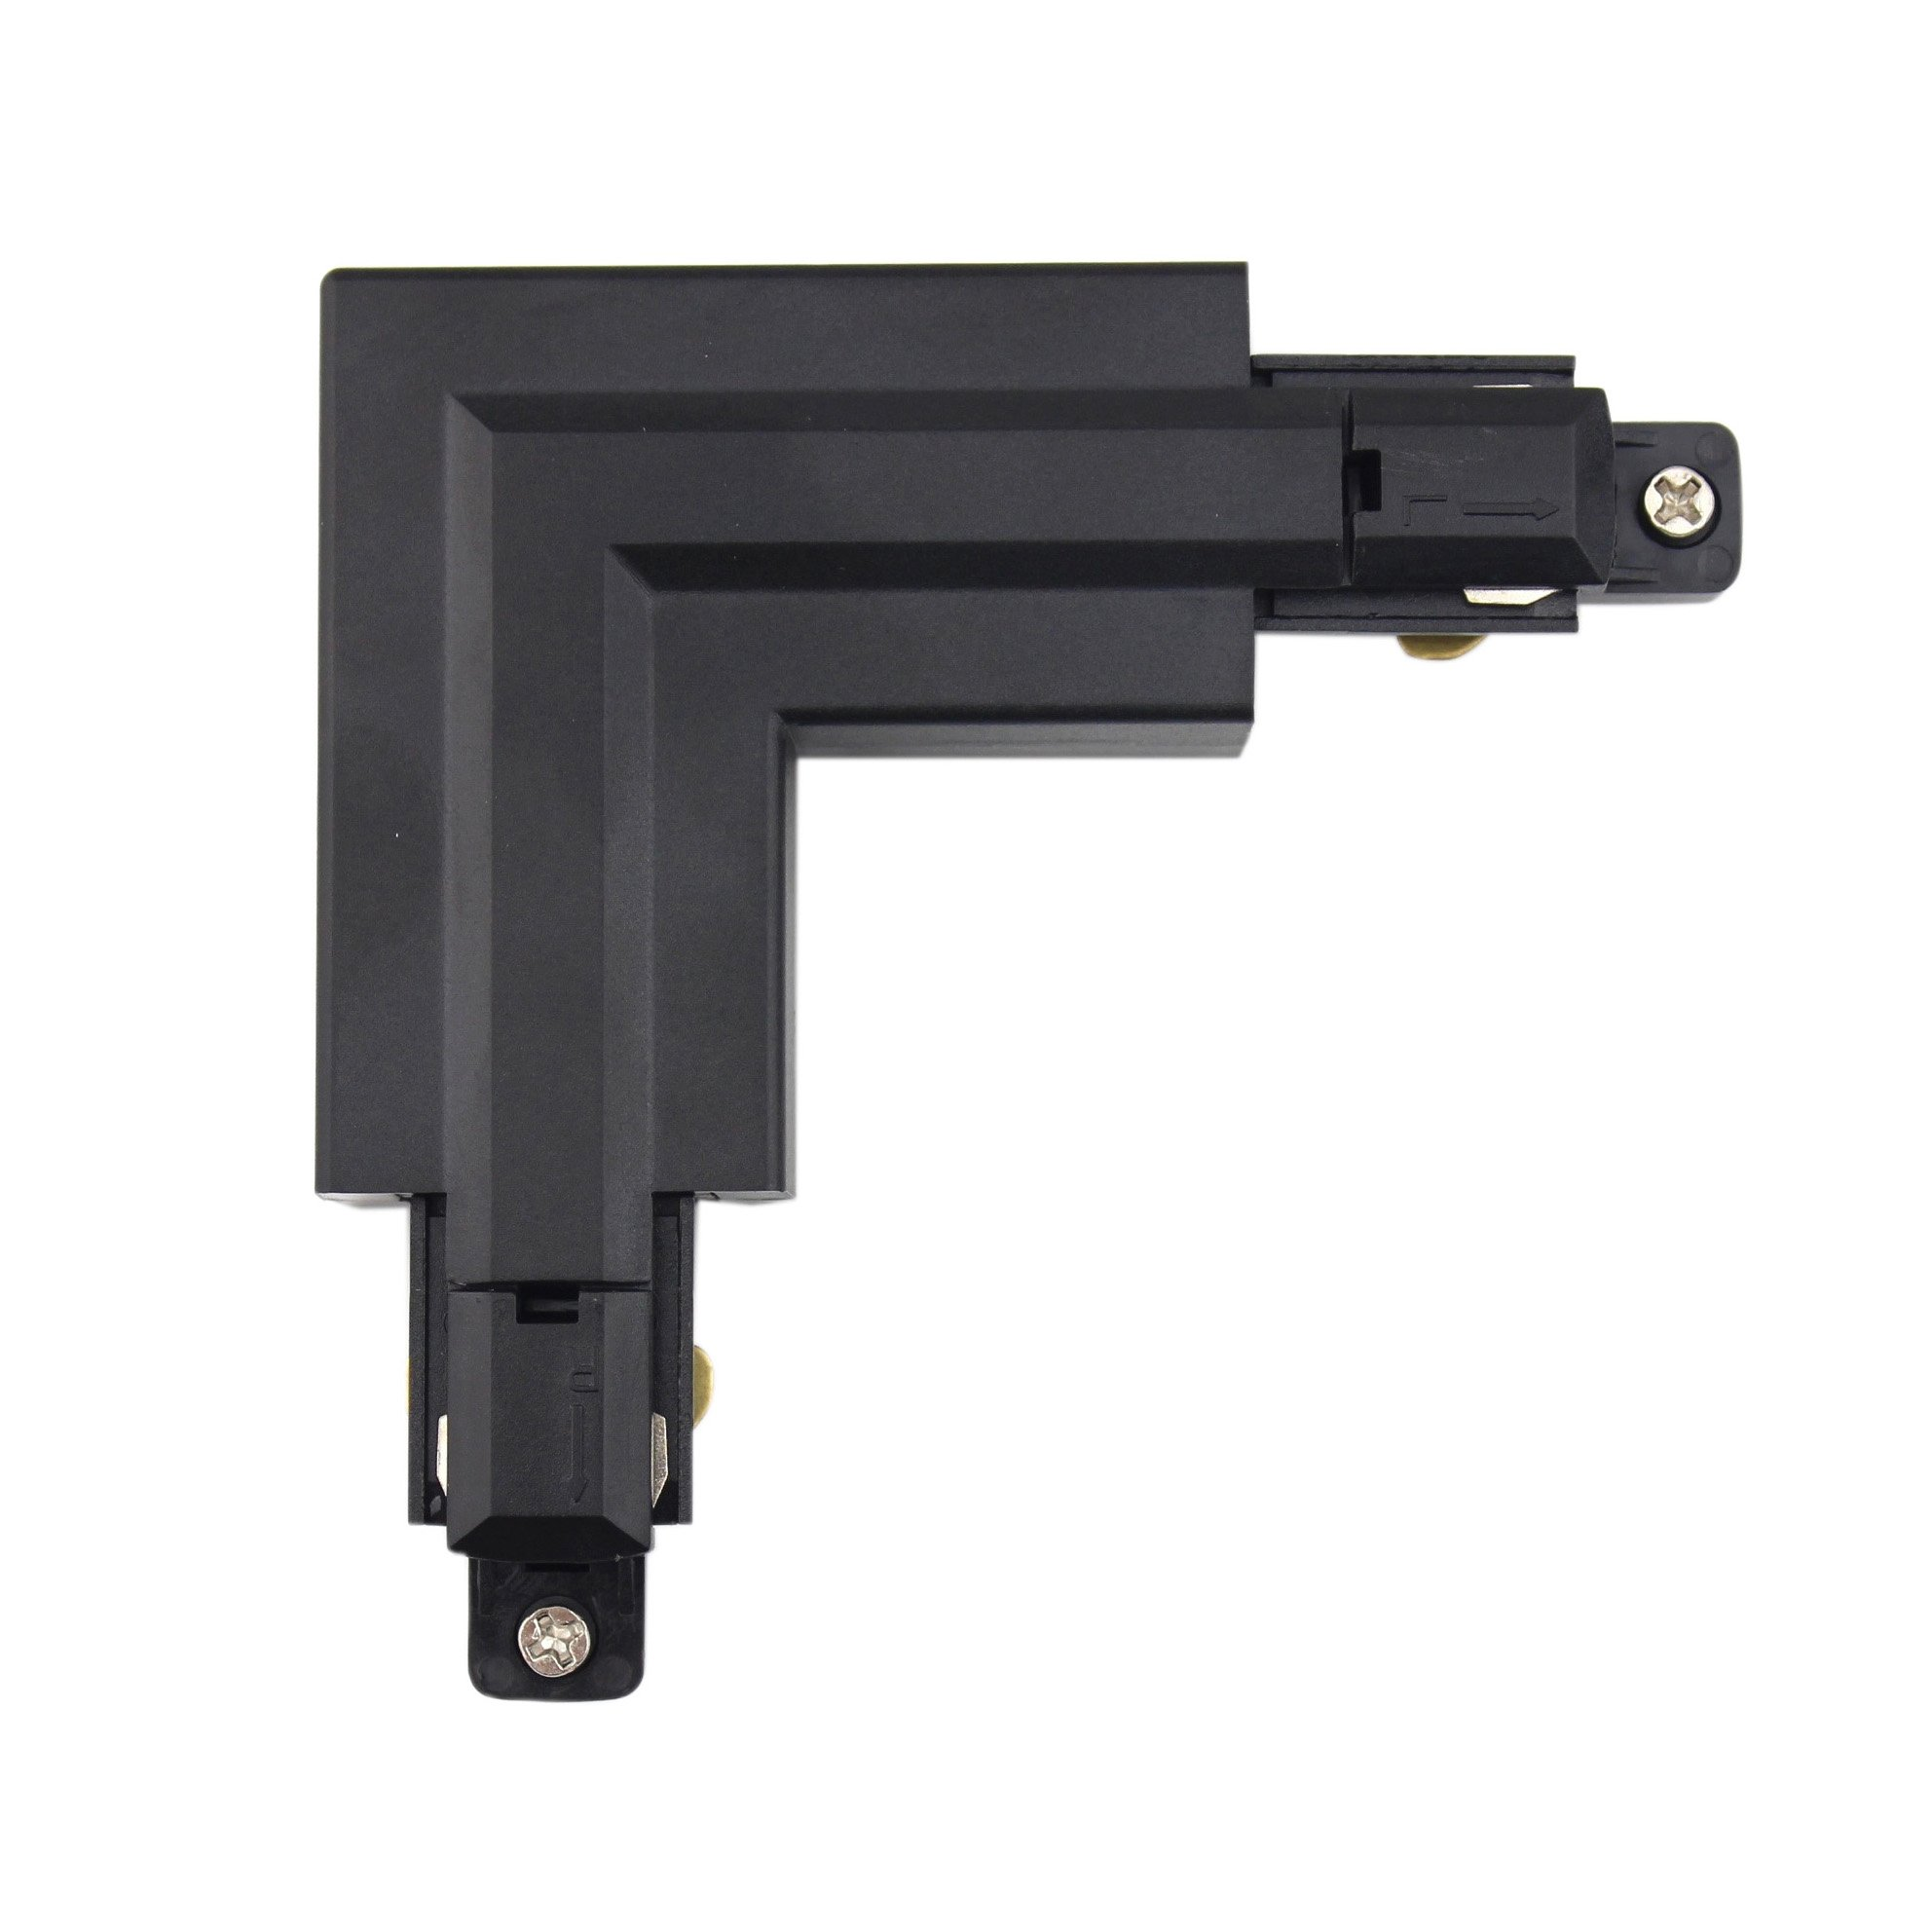 J.LUMI RAC6001 Track Light Rail L-Shape Connector, 90 Degree Angle Connection, Compatible with J.LUMI track rail RAL3002 (NOT COMPATIBLE WITH RAL1002)